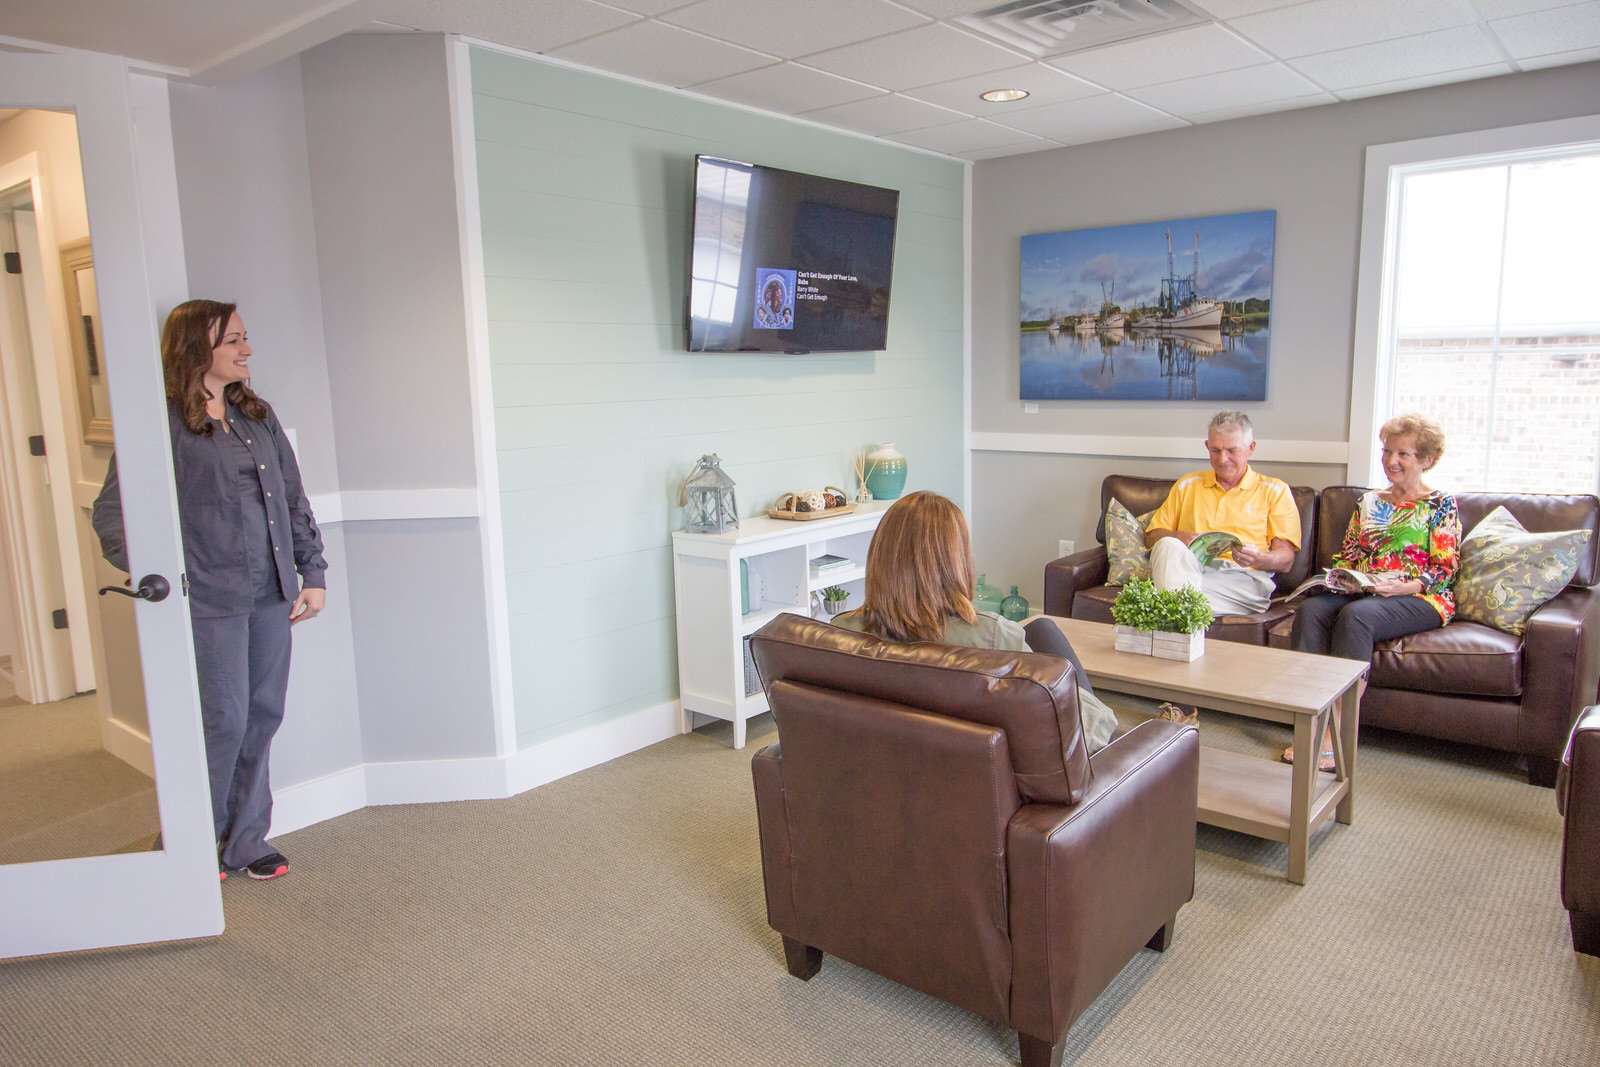 Patients in the waiting room